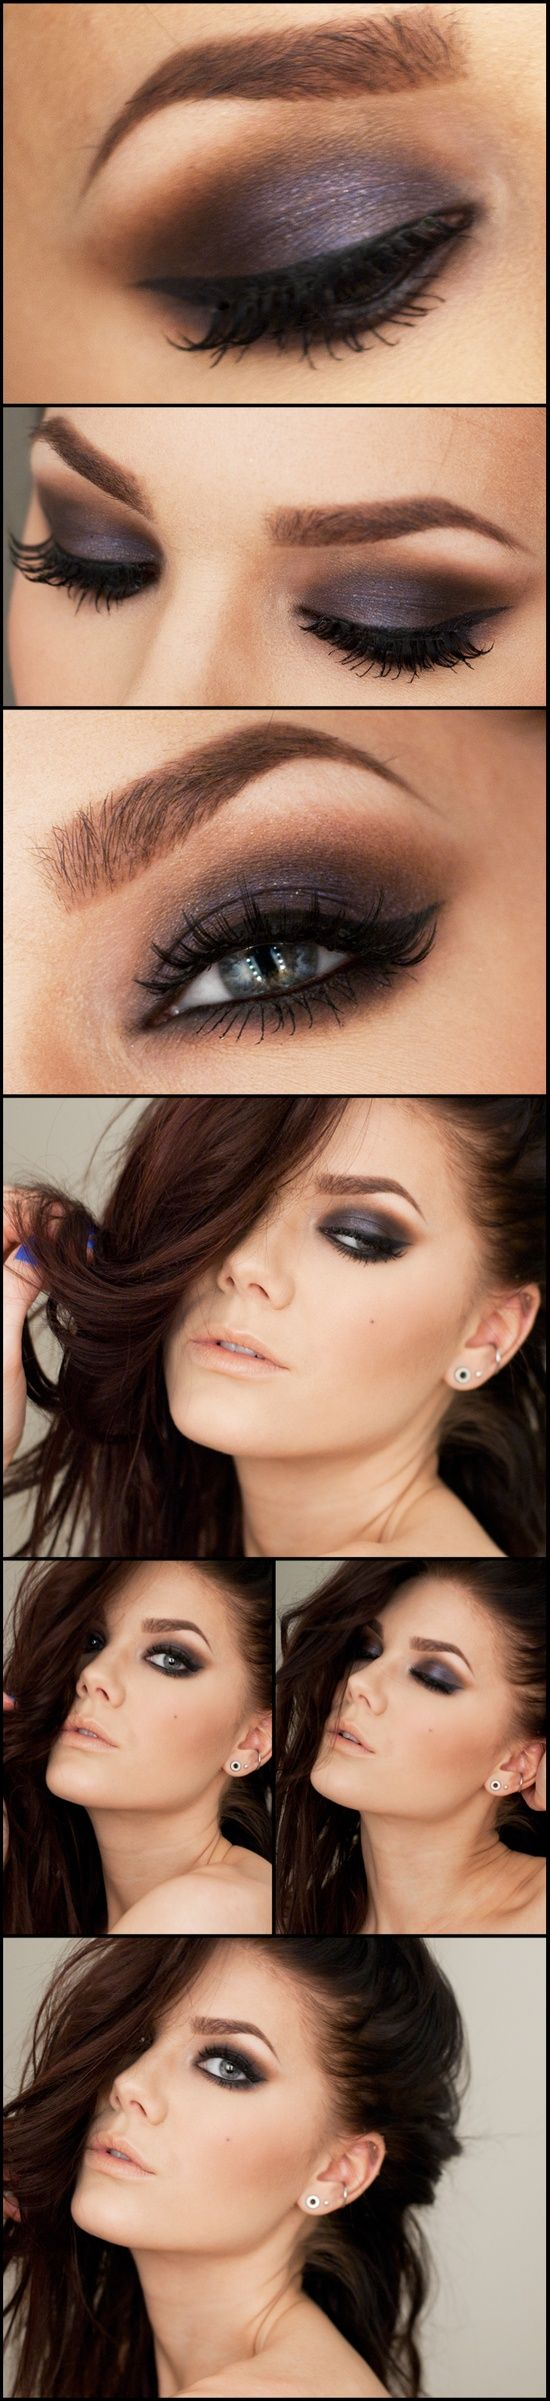 Love her eyes. Reminds me to sometimes do the darker lid & lighter crease- then lightest brow bone as always. I usually do the darker crease.